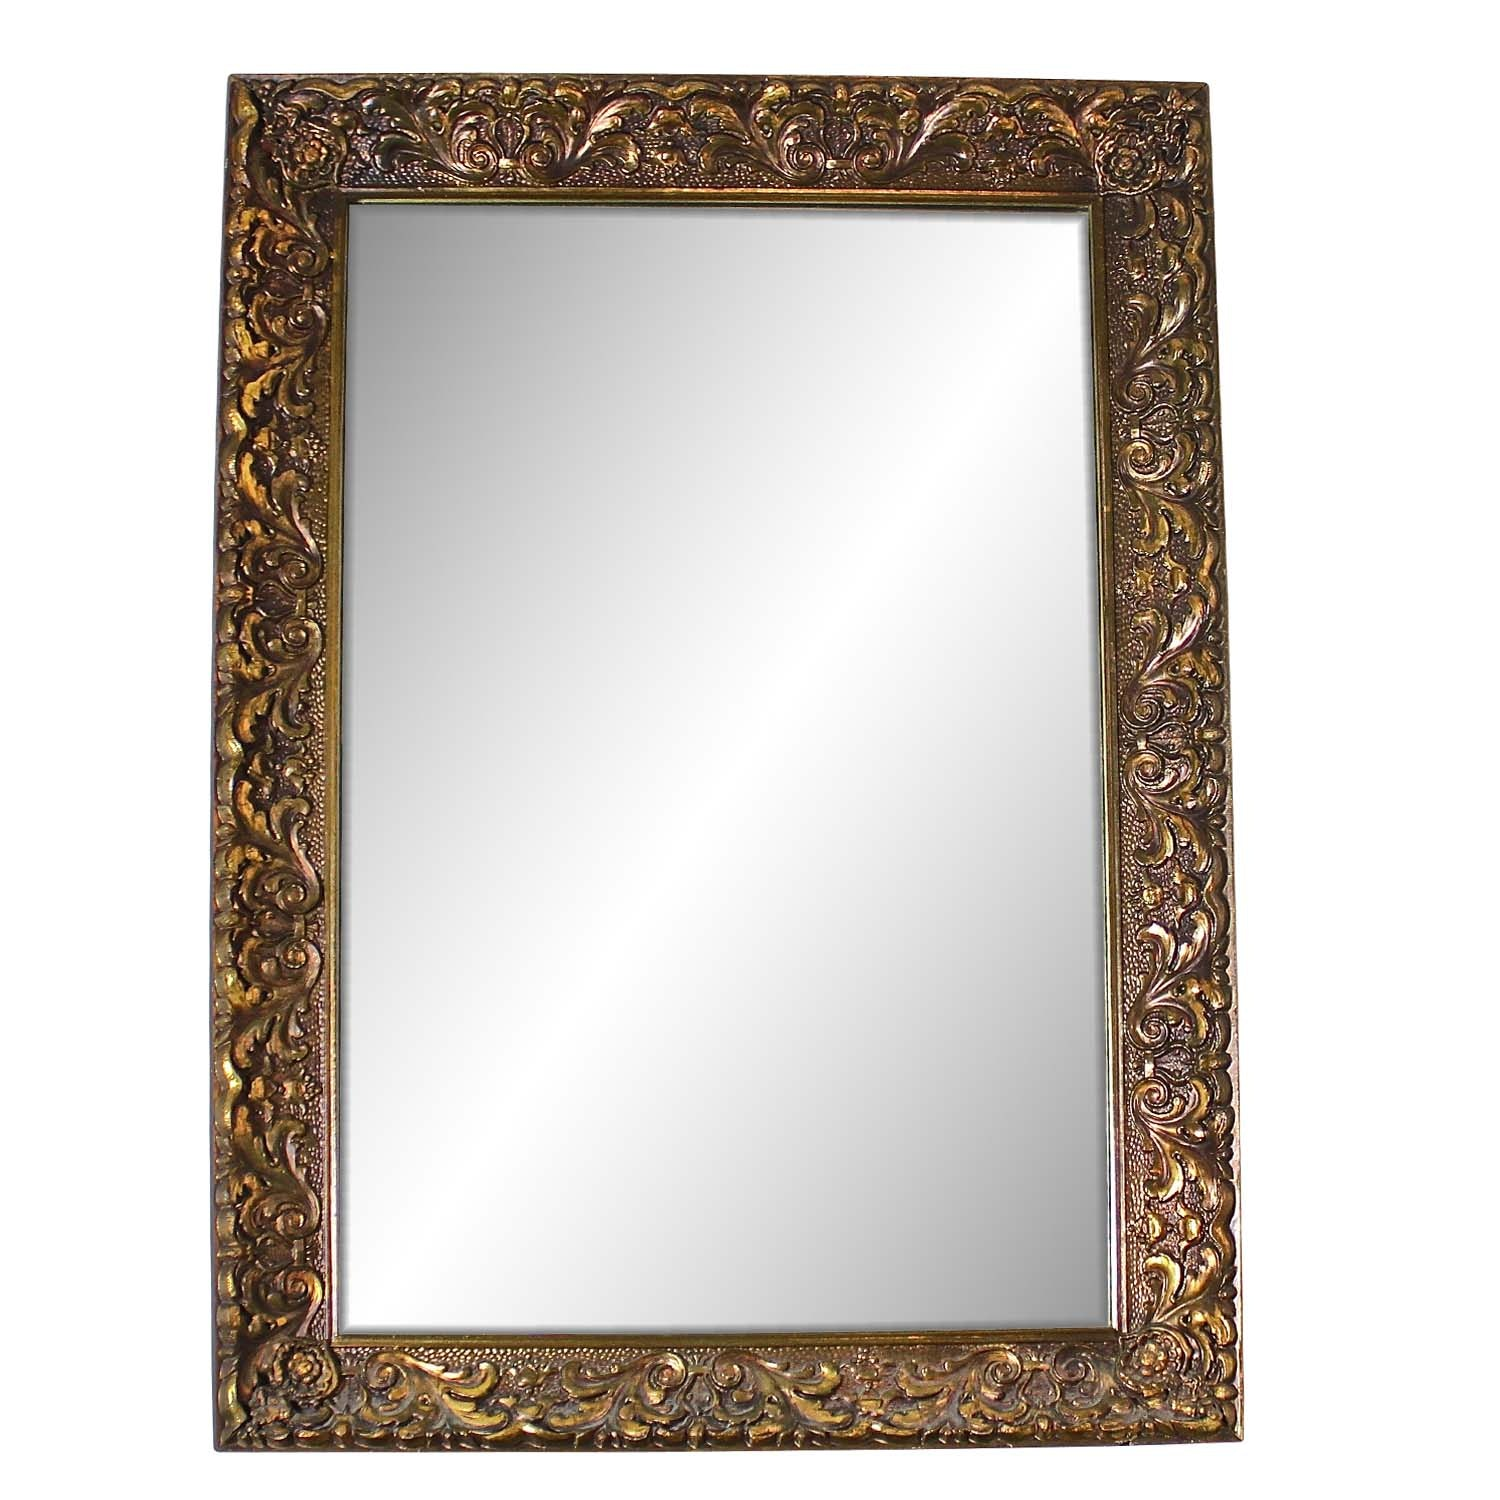 Floral Gold Painted Wall Mirror